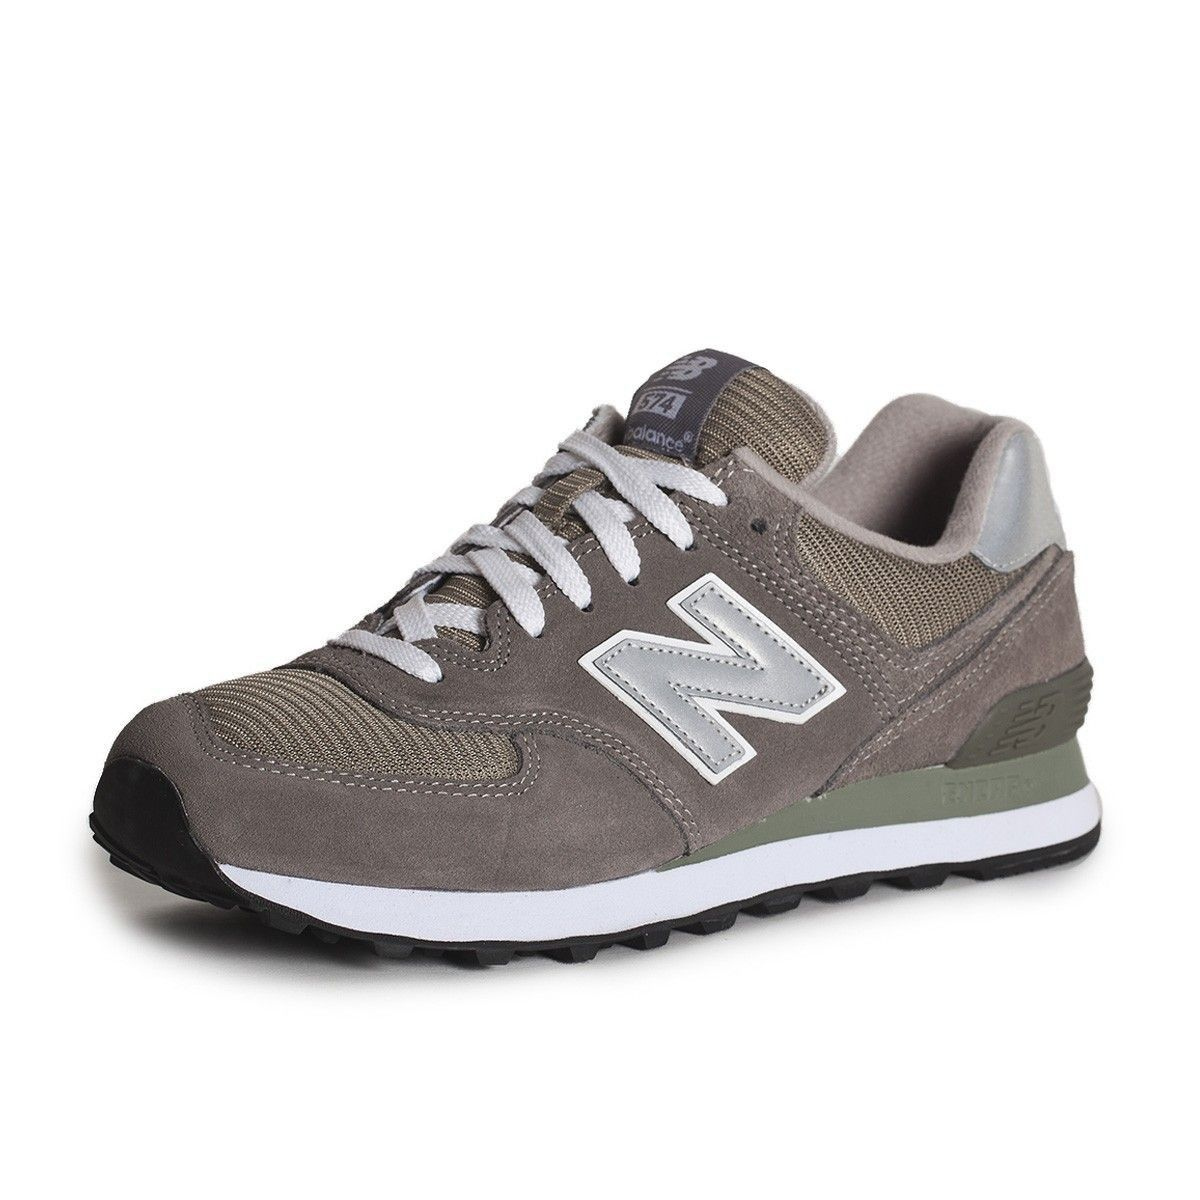 finest selection 2165c 4758e New Balance M574gs - Taille : 42 | Products | New balance ...